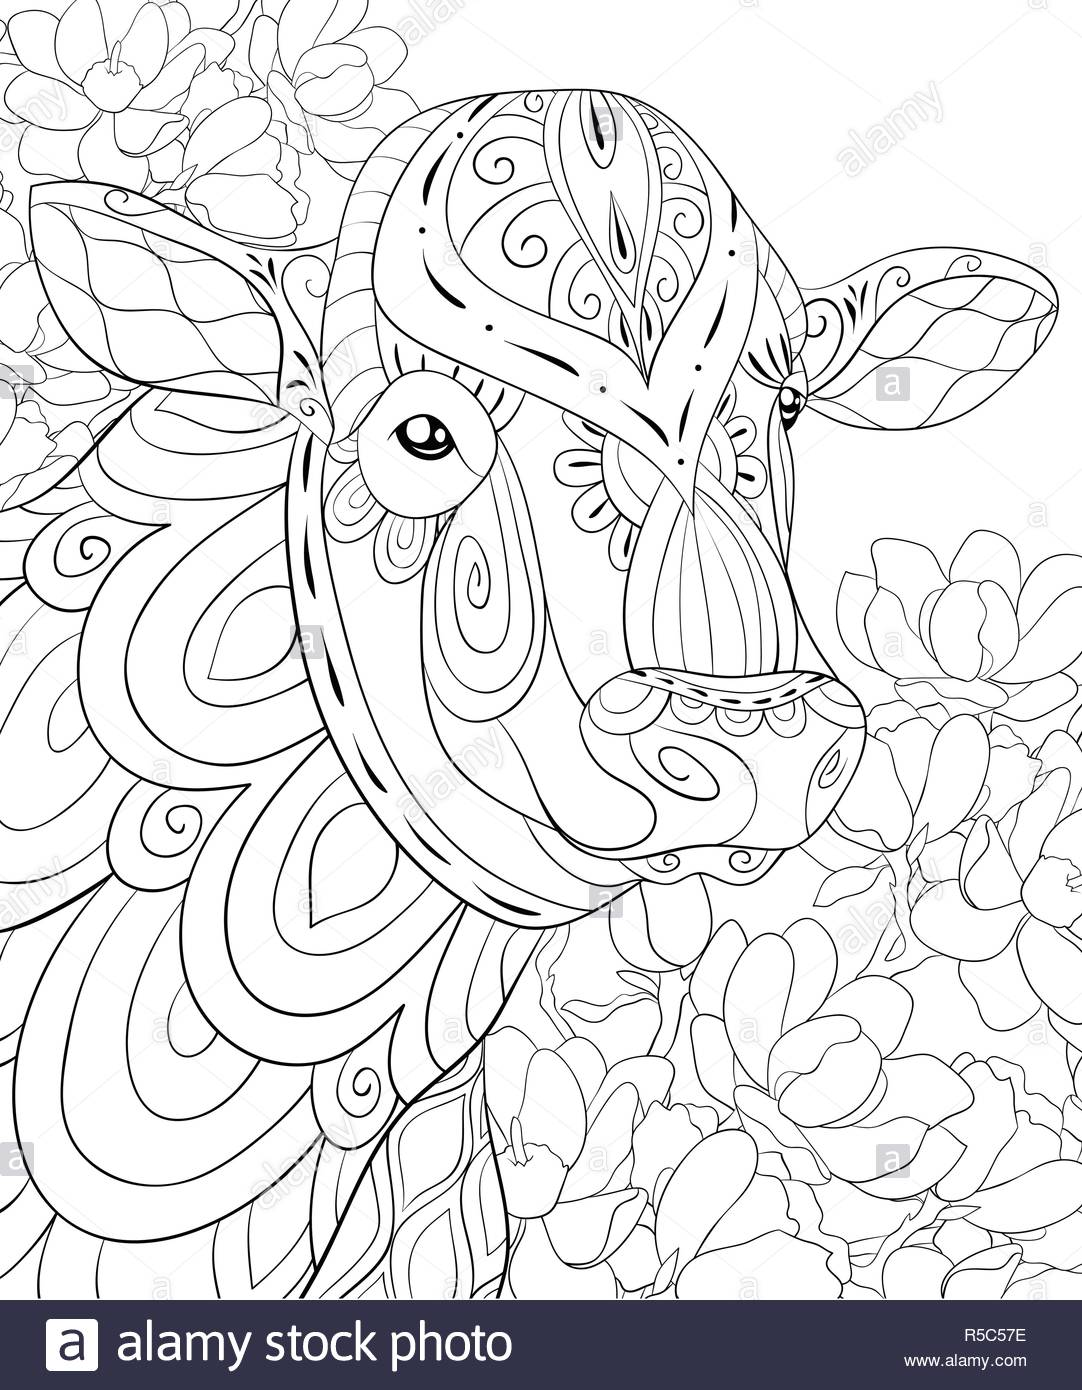 Line Decorative Drawing Indian Cow Stock Photos & Line